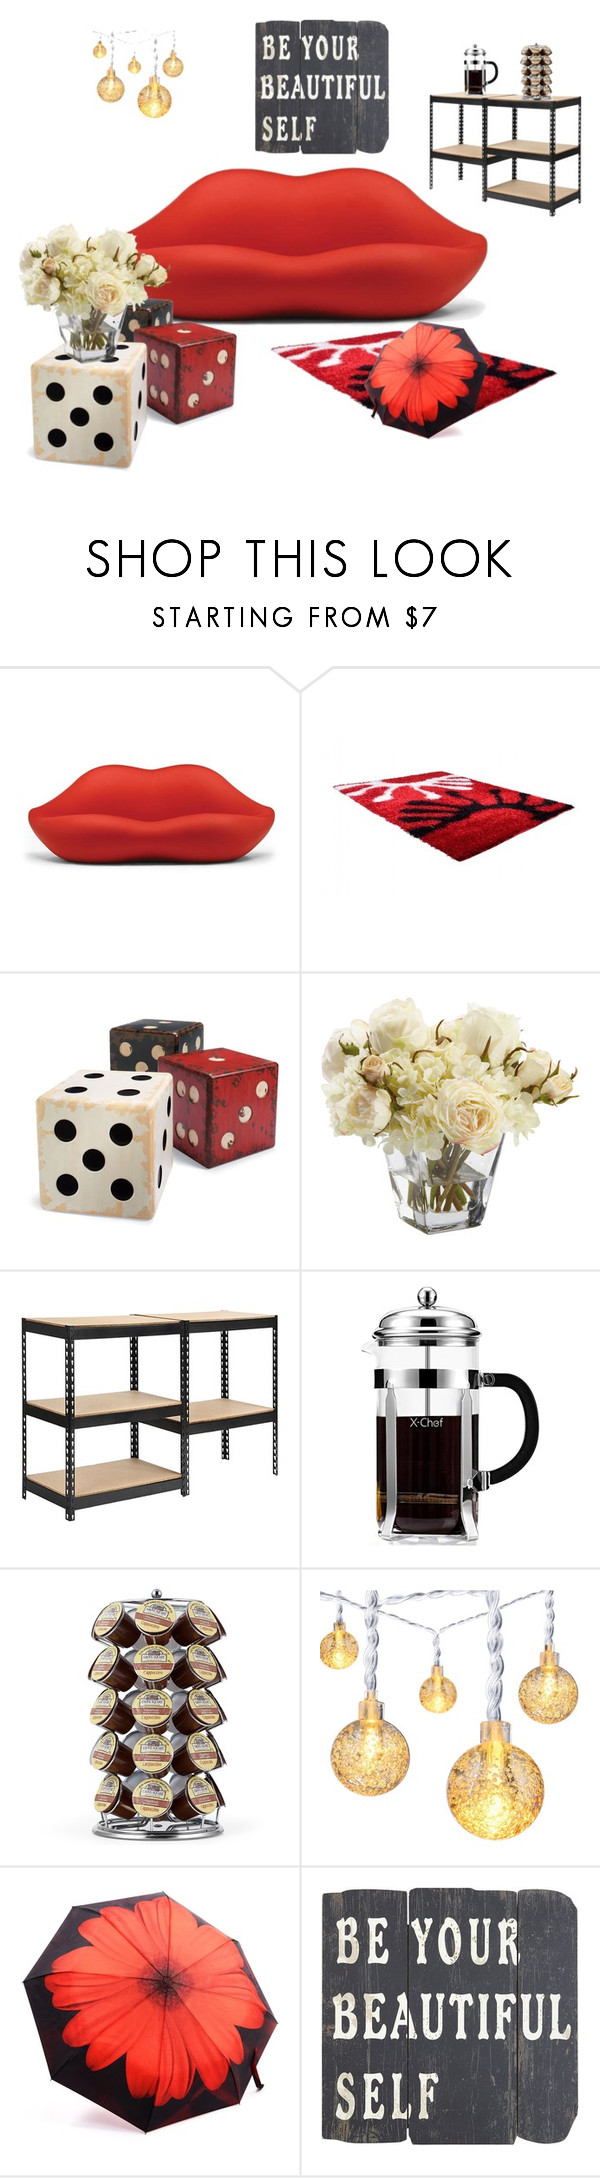 """Beautiful Decor"" by ioakleaf on Polyvore featuring interior, interiors, interior design, home, home decor, interior decorating, Heller, Grandin Road, Ethan Allen and Keurig"